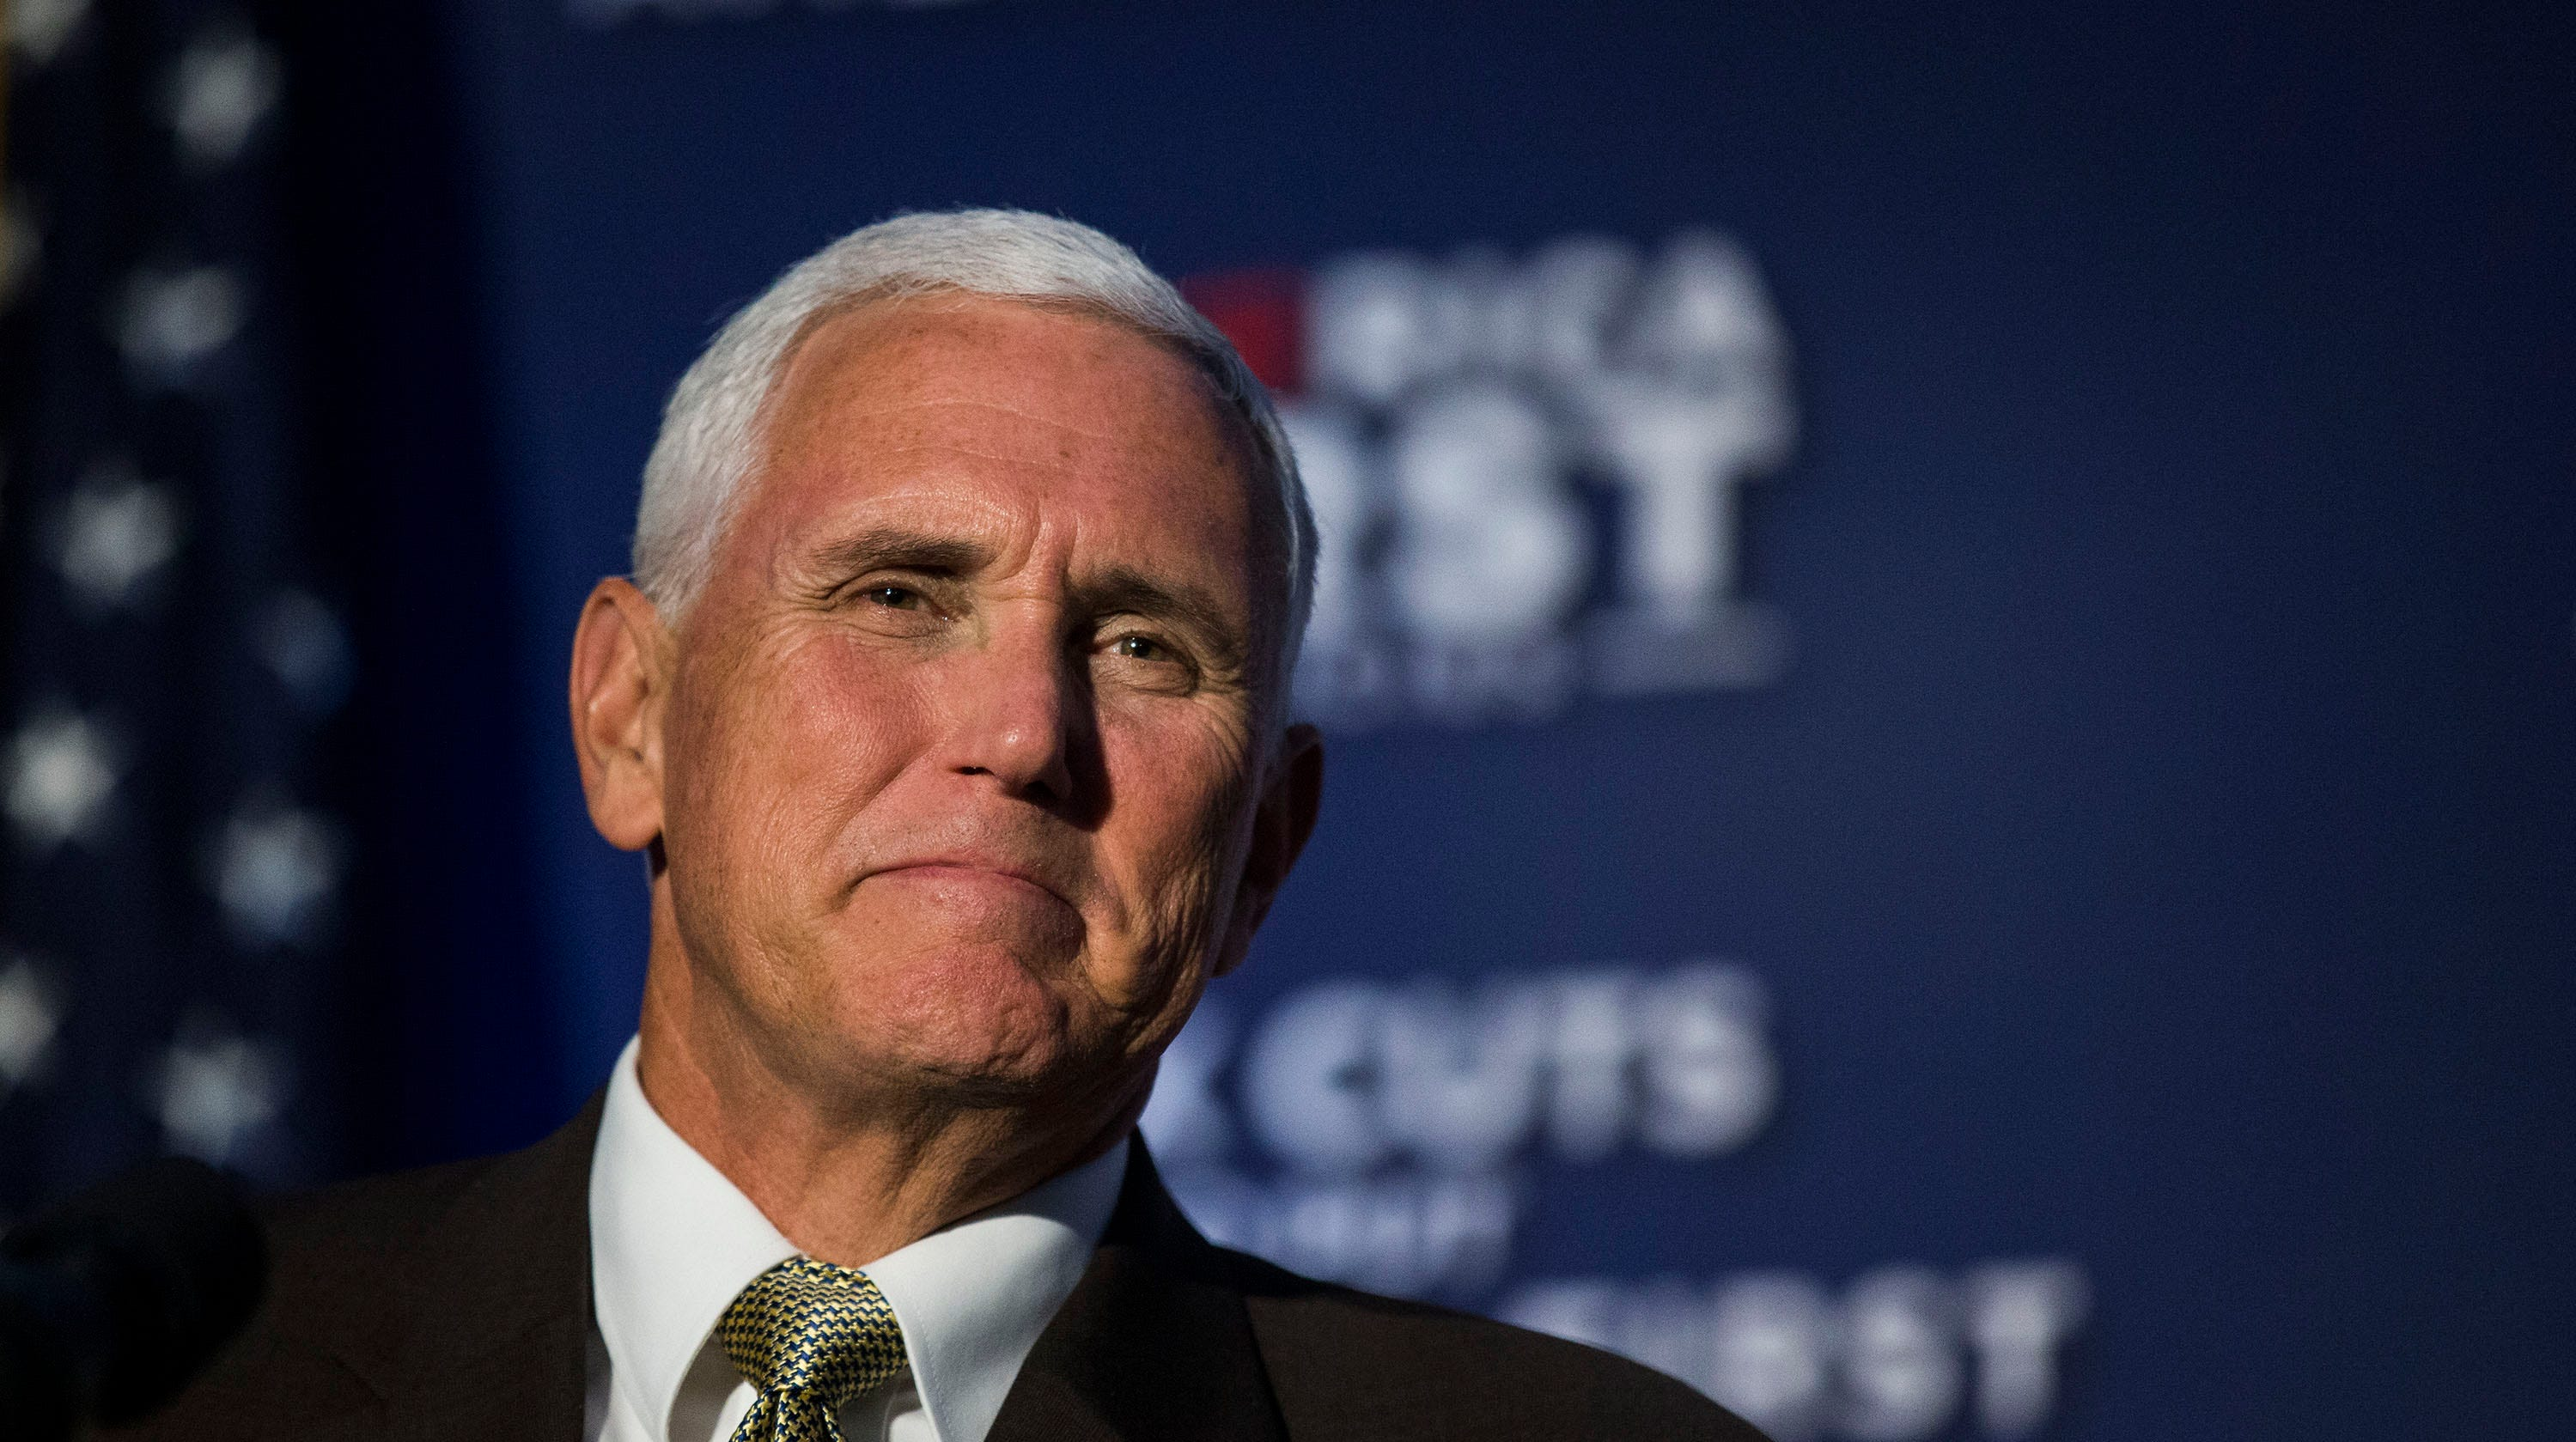 Mike Pence, who met with family of Mollie Tibbetts in Iowa: 'You're on the hearts of every American'